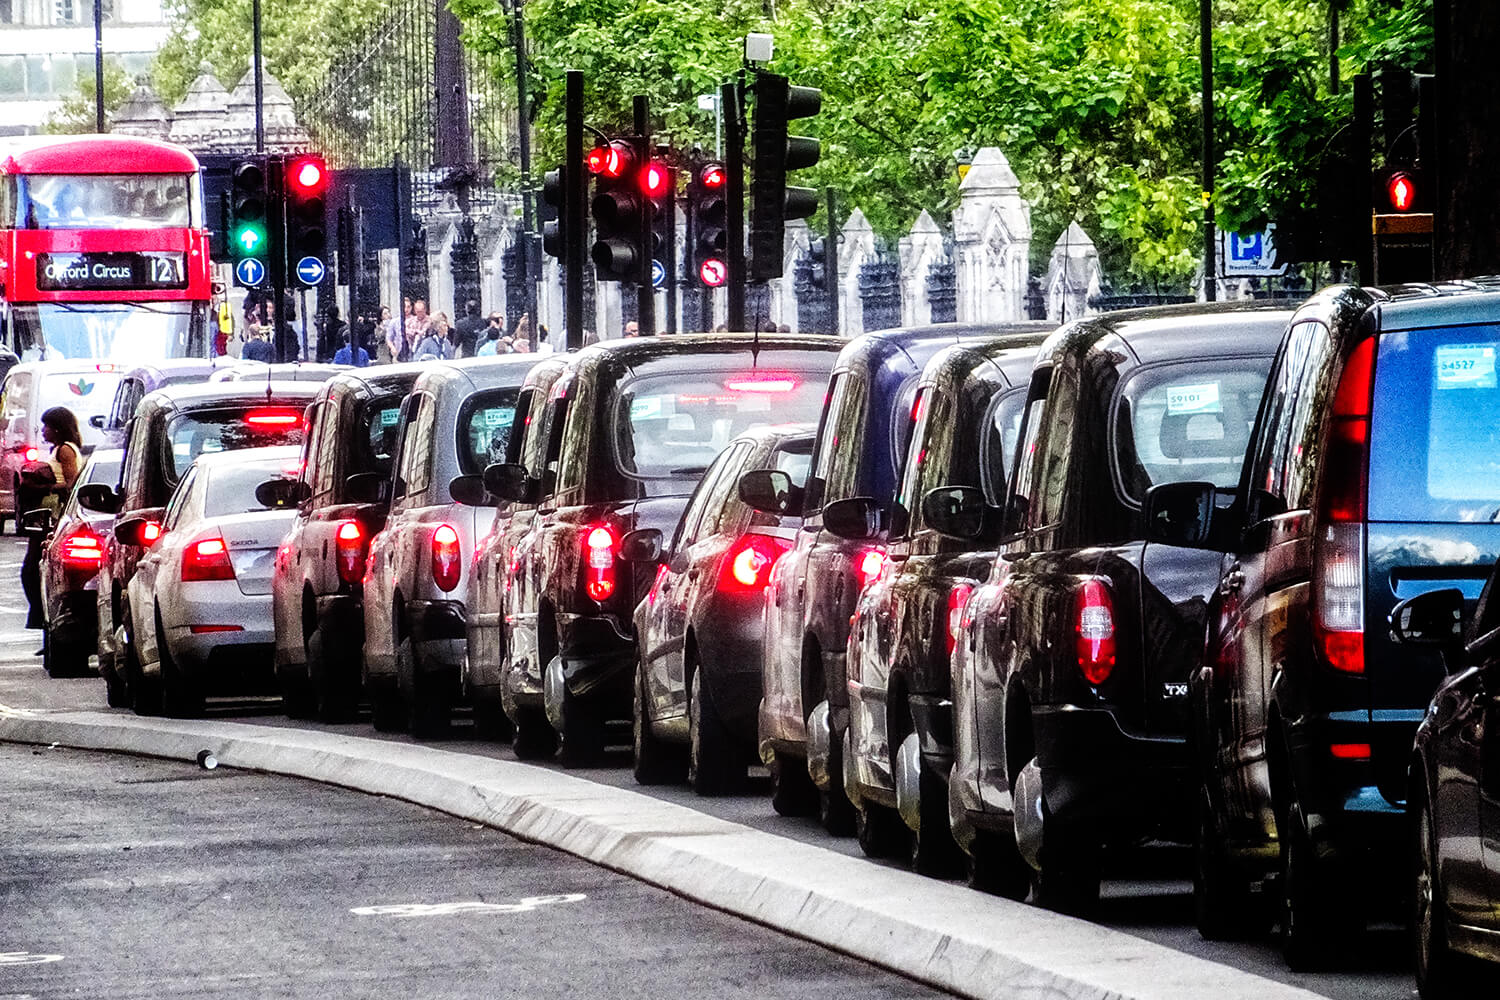 Queue of London taxis, traffic